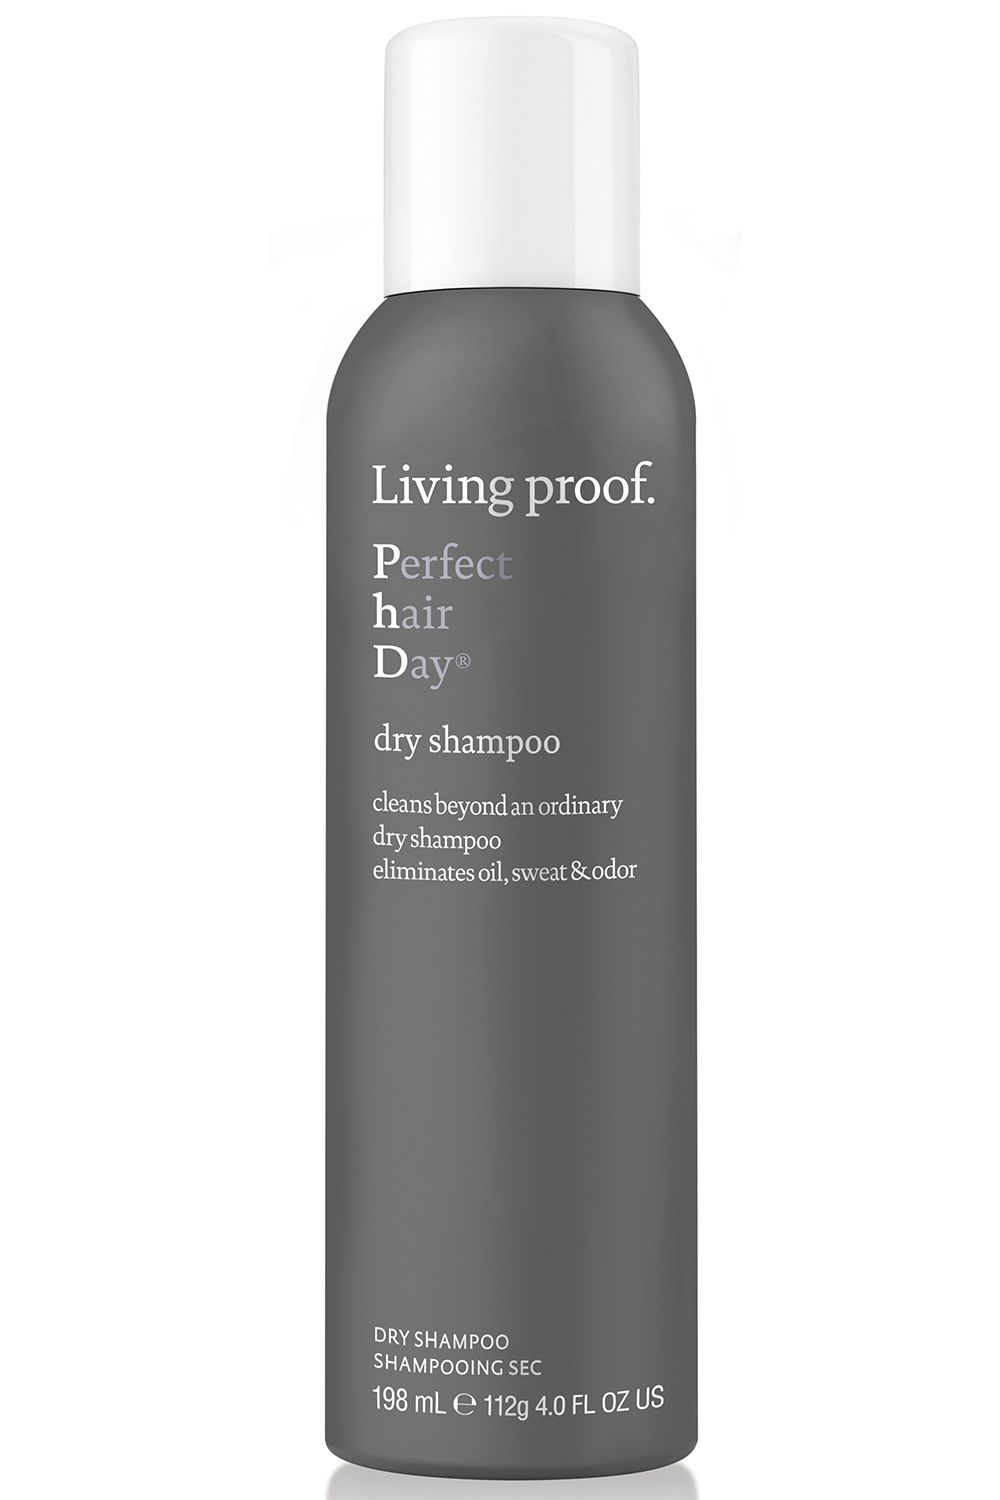 """<p>We put this revolutionary—no, we're not being hyperbolic—<a href=""""http://www.harpersbazaar.com/beauty/hair/a11870/dry-shampoo-that-actually-cleans-hair/"""" target=""""_blank"""">dry shampoo</a> to the Soul-Cycle test and it transformed our sweaty, post-workout hair into bouncy, shiny perfection.</p><p><strong>Living Proof</strong> Perfect Hair Day Dry Shampoo, $22, <a href=""""http://www.livingproof.com/buy/perfecthairday-dry-shampoo"""" target=""""_blank"""">livingproof.com</a>.</p>"""